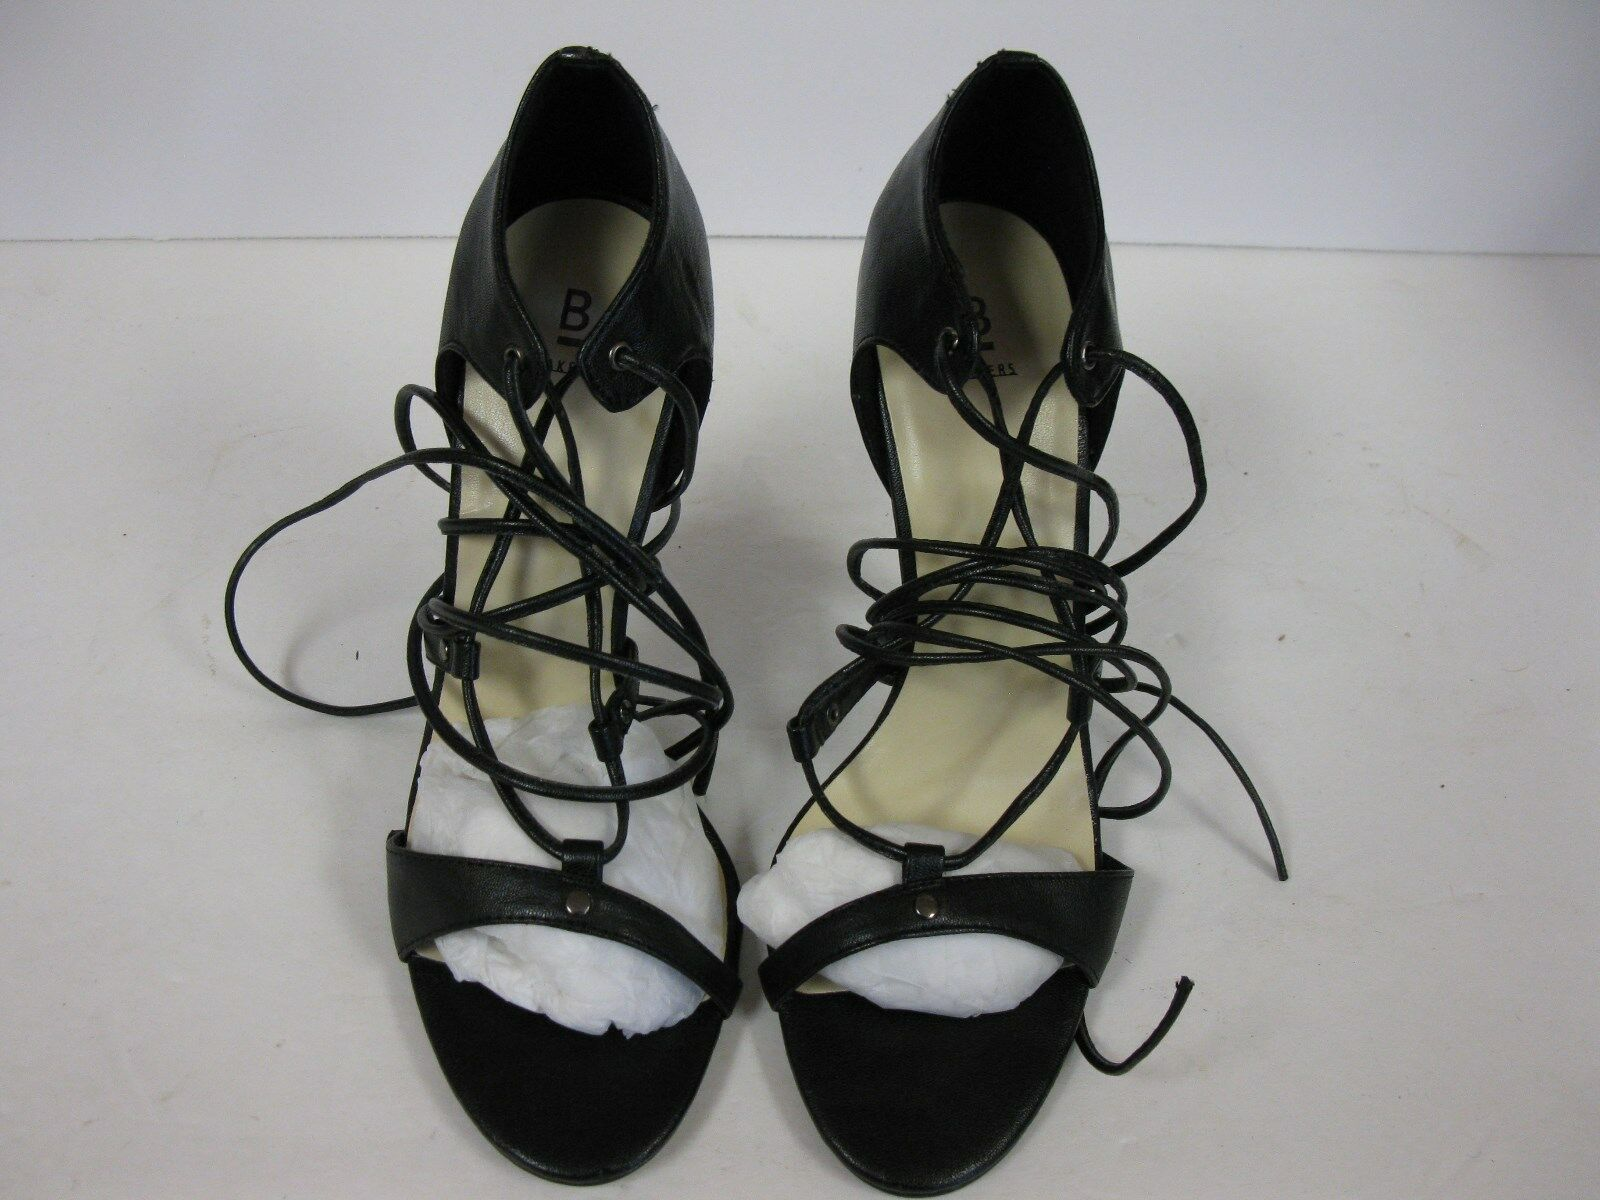 """Bakers """"Winnie"""" Black Strappy Ankle Wrap High Heel Sandals Shoes Sz 10B"""